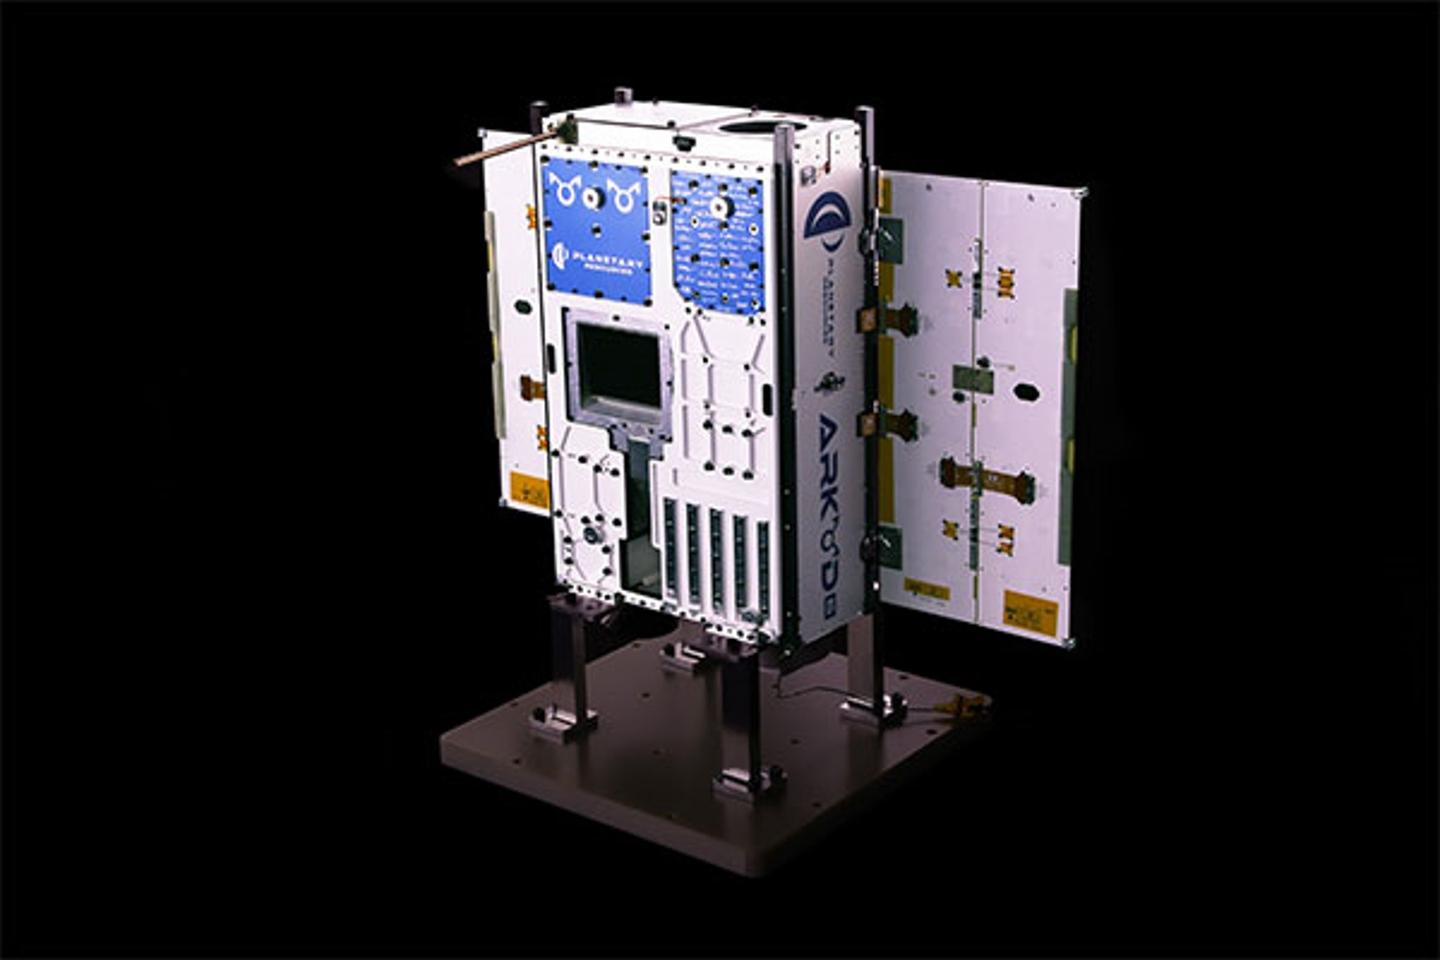 The Arkyd-6 is a six-unit CubeSat designed to test asteroid prospecting technology